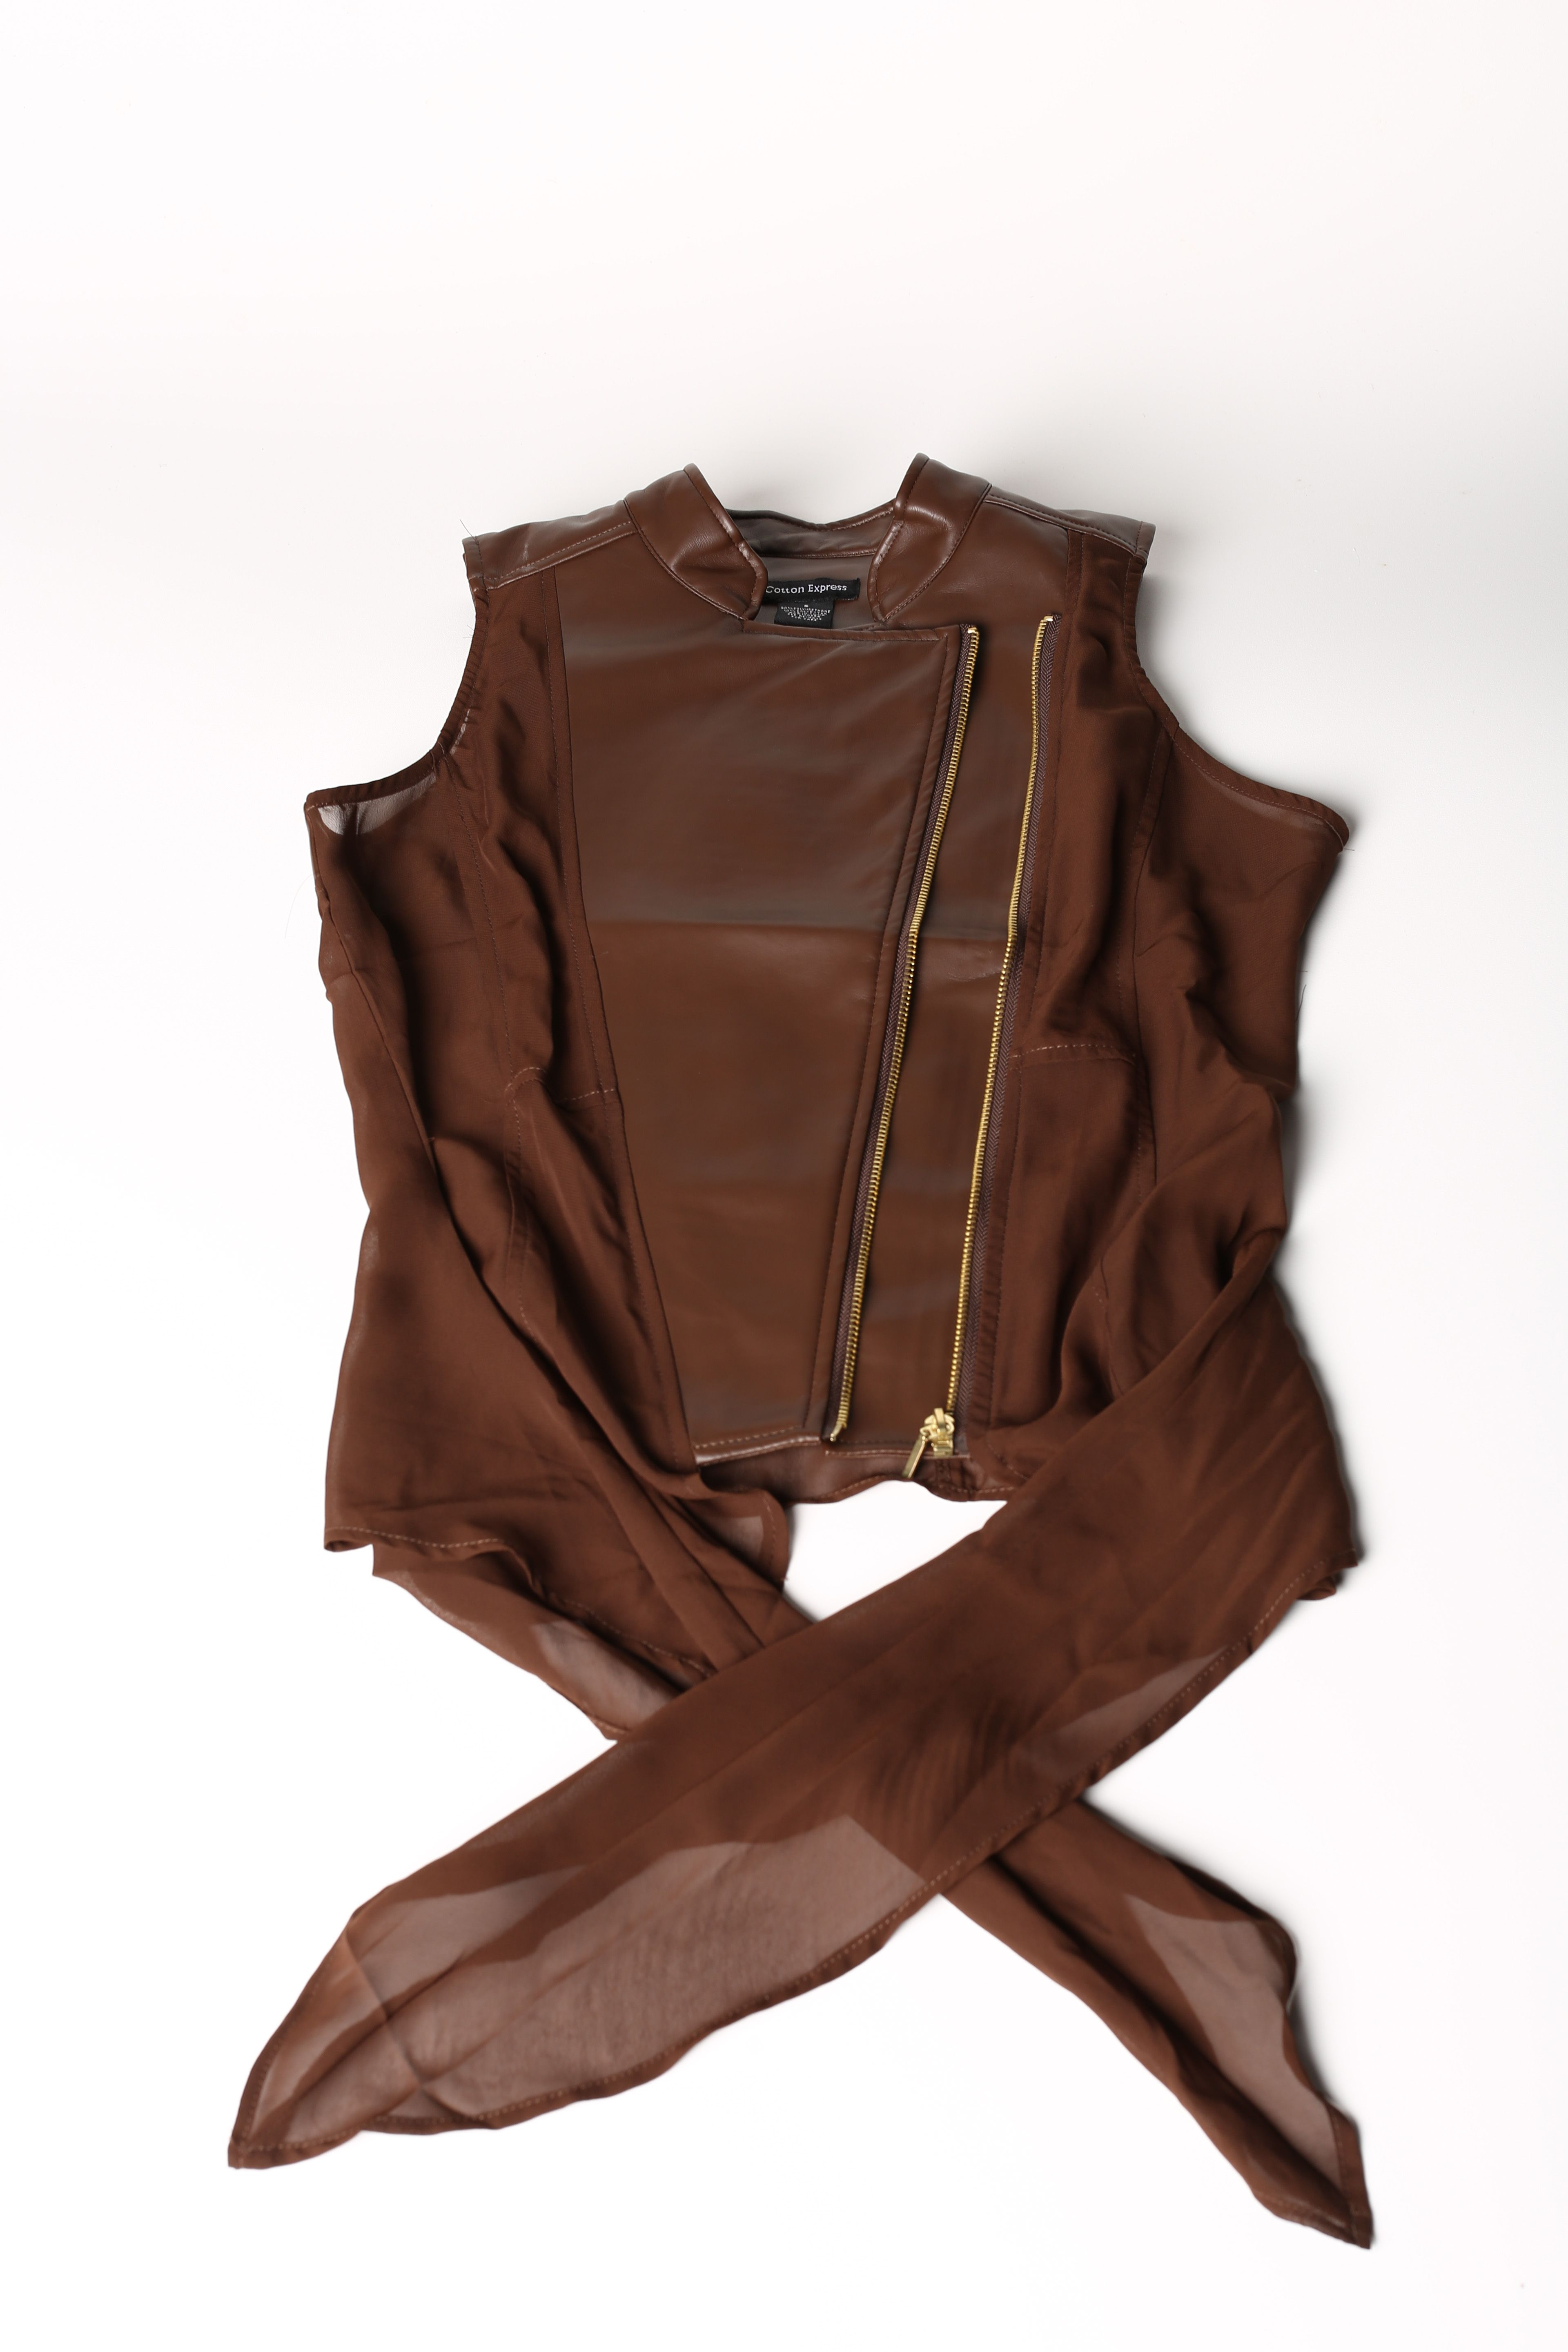 Brown #Vest- $14.99 #BacktoSchool #Fashion #Zipper #Angle #Tie #Hip #Headturner #DiscoveryClothing#discoveryfashion #fall2013